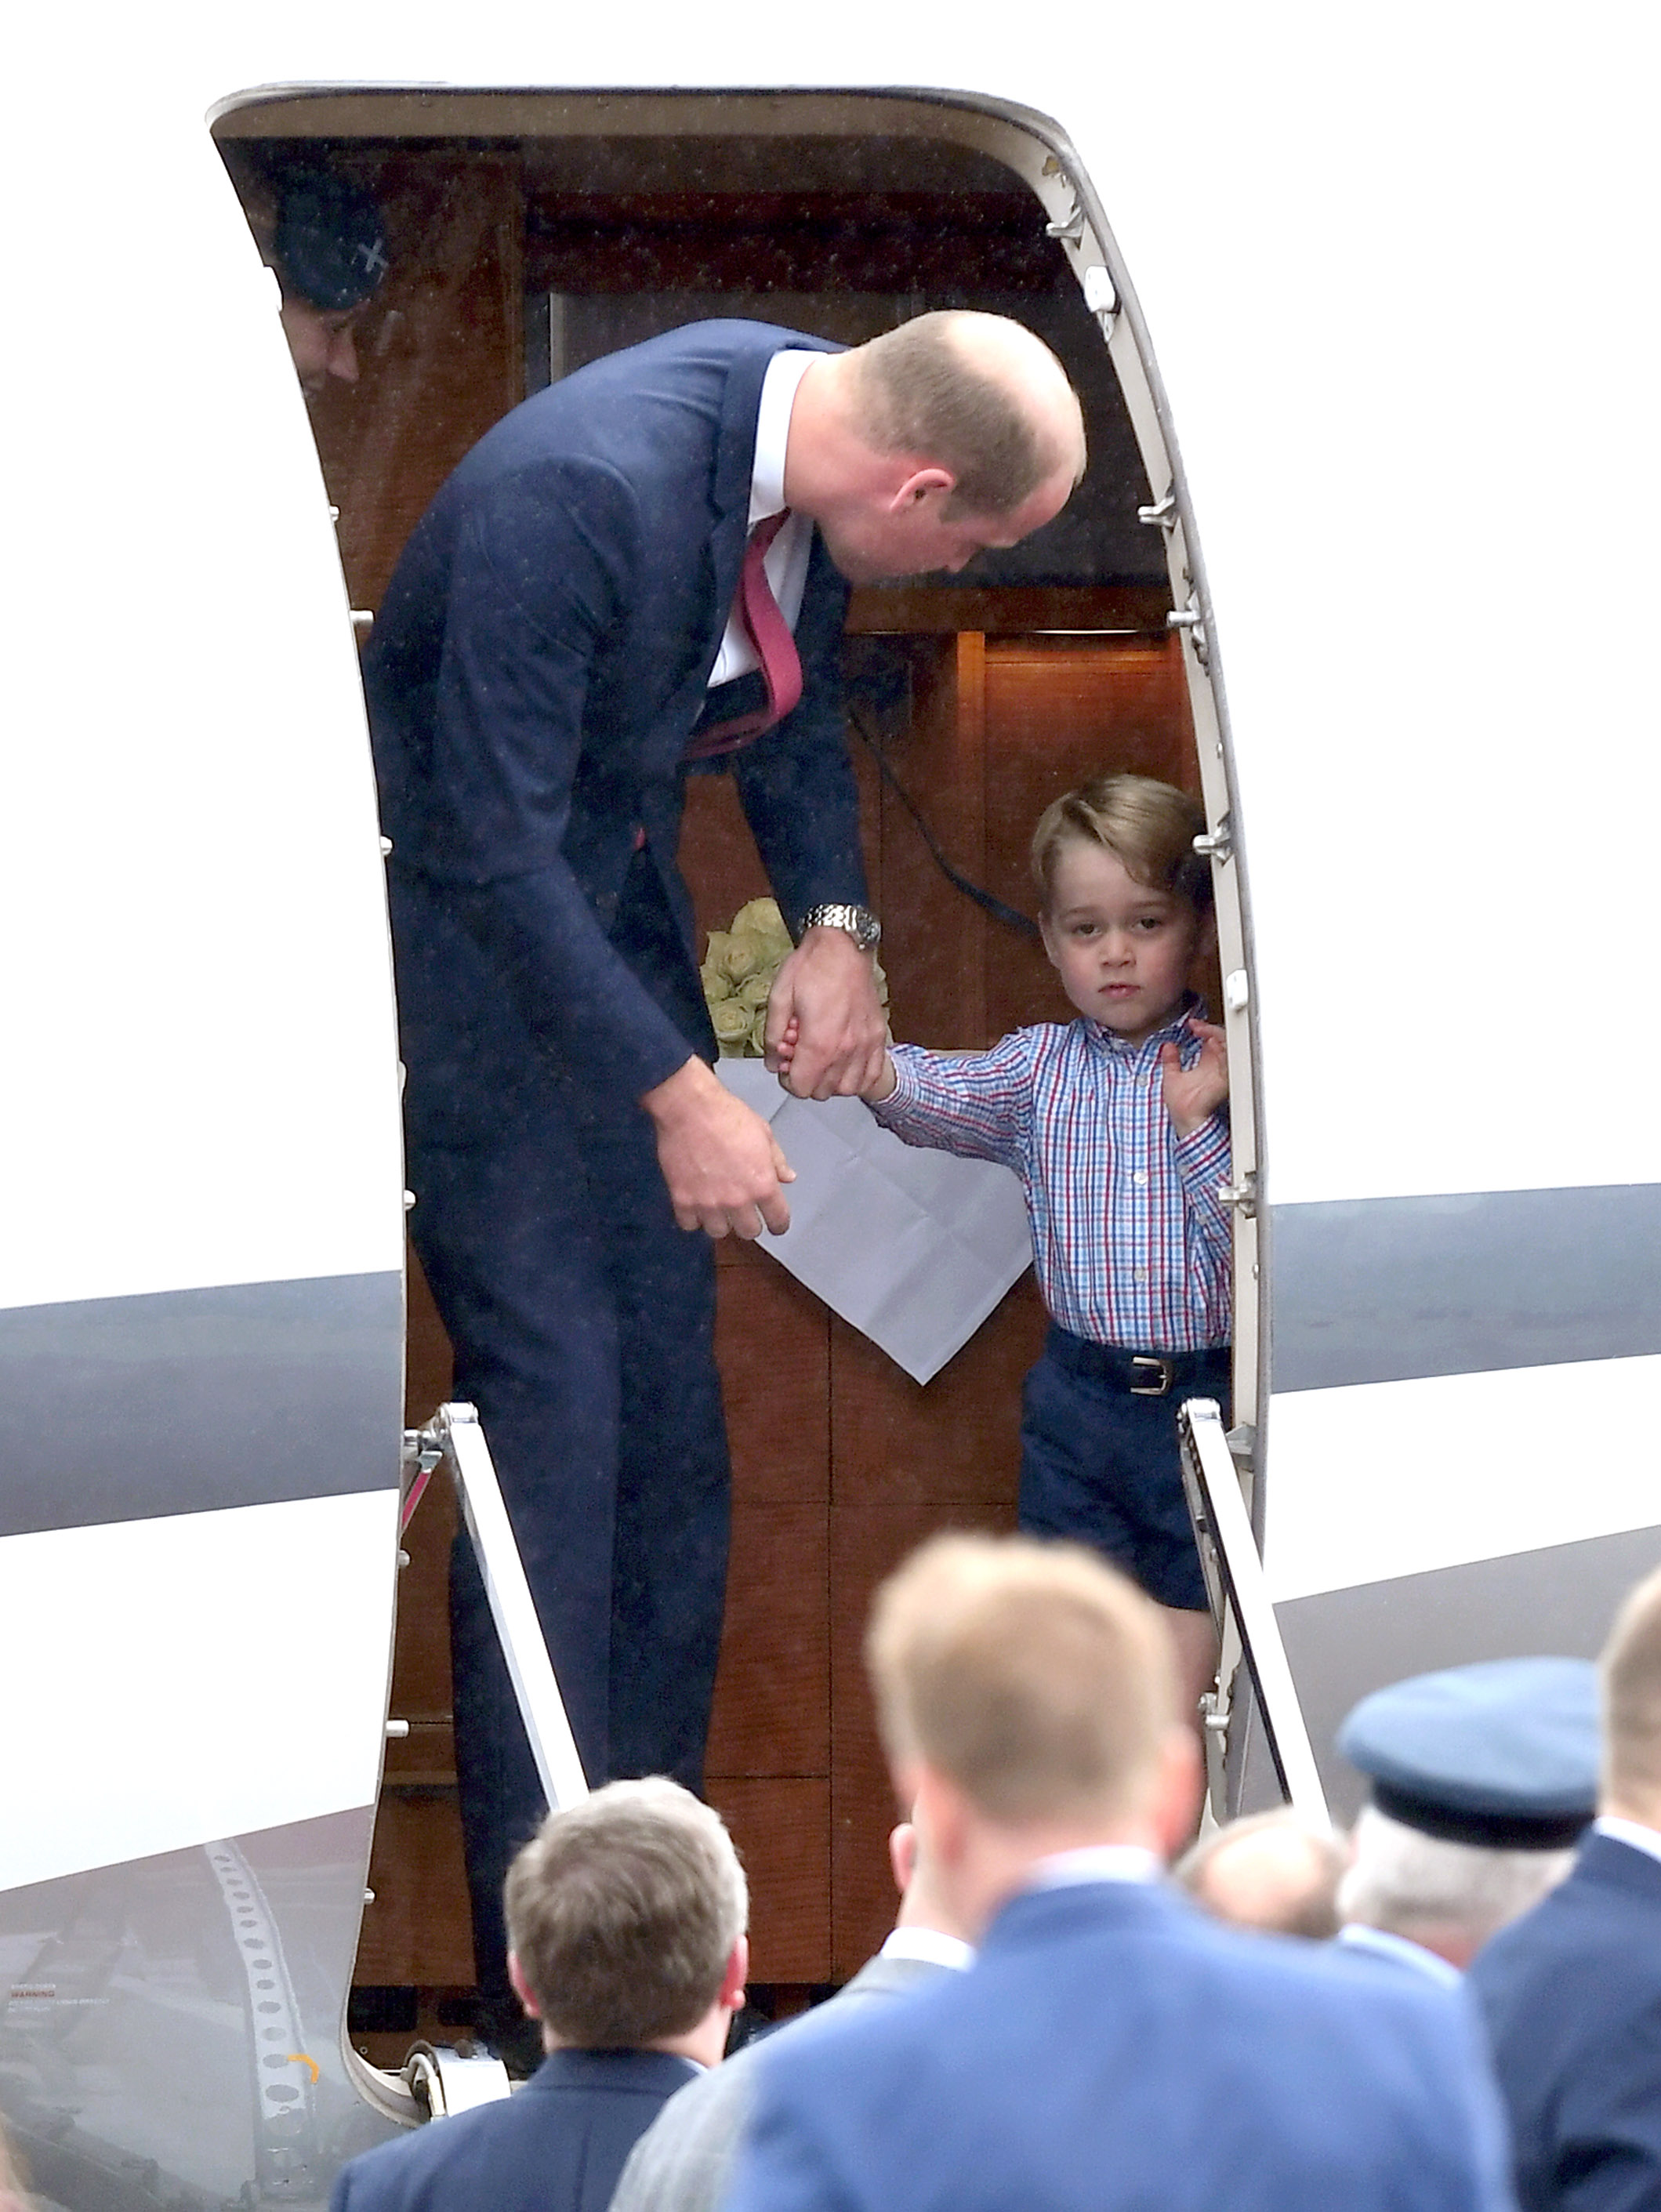 William leads George out of the plane at the Warsaw airport.